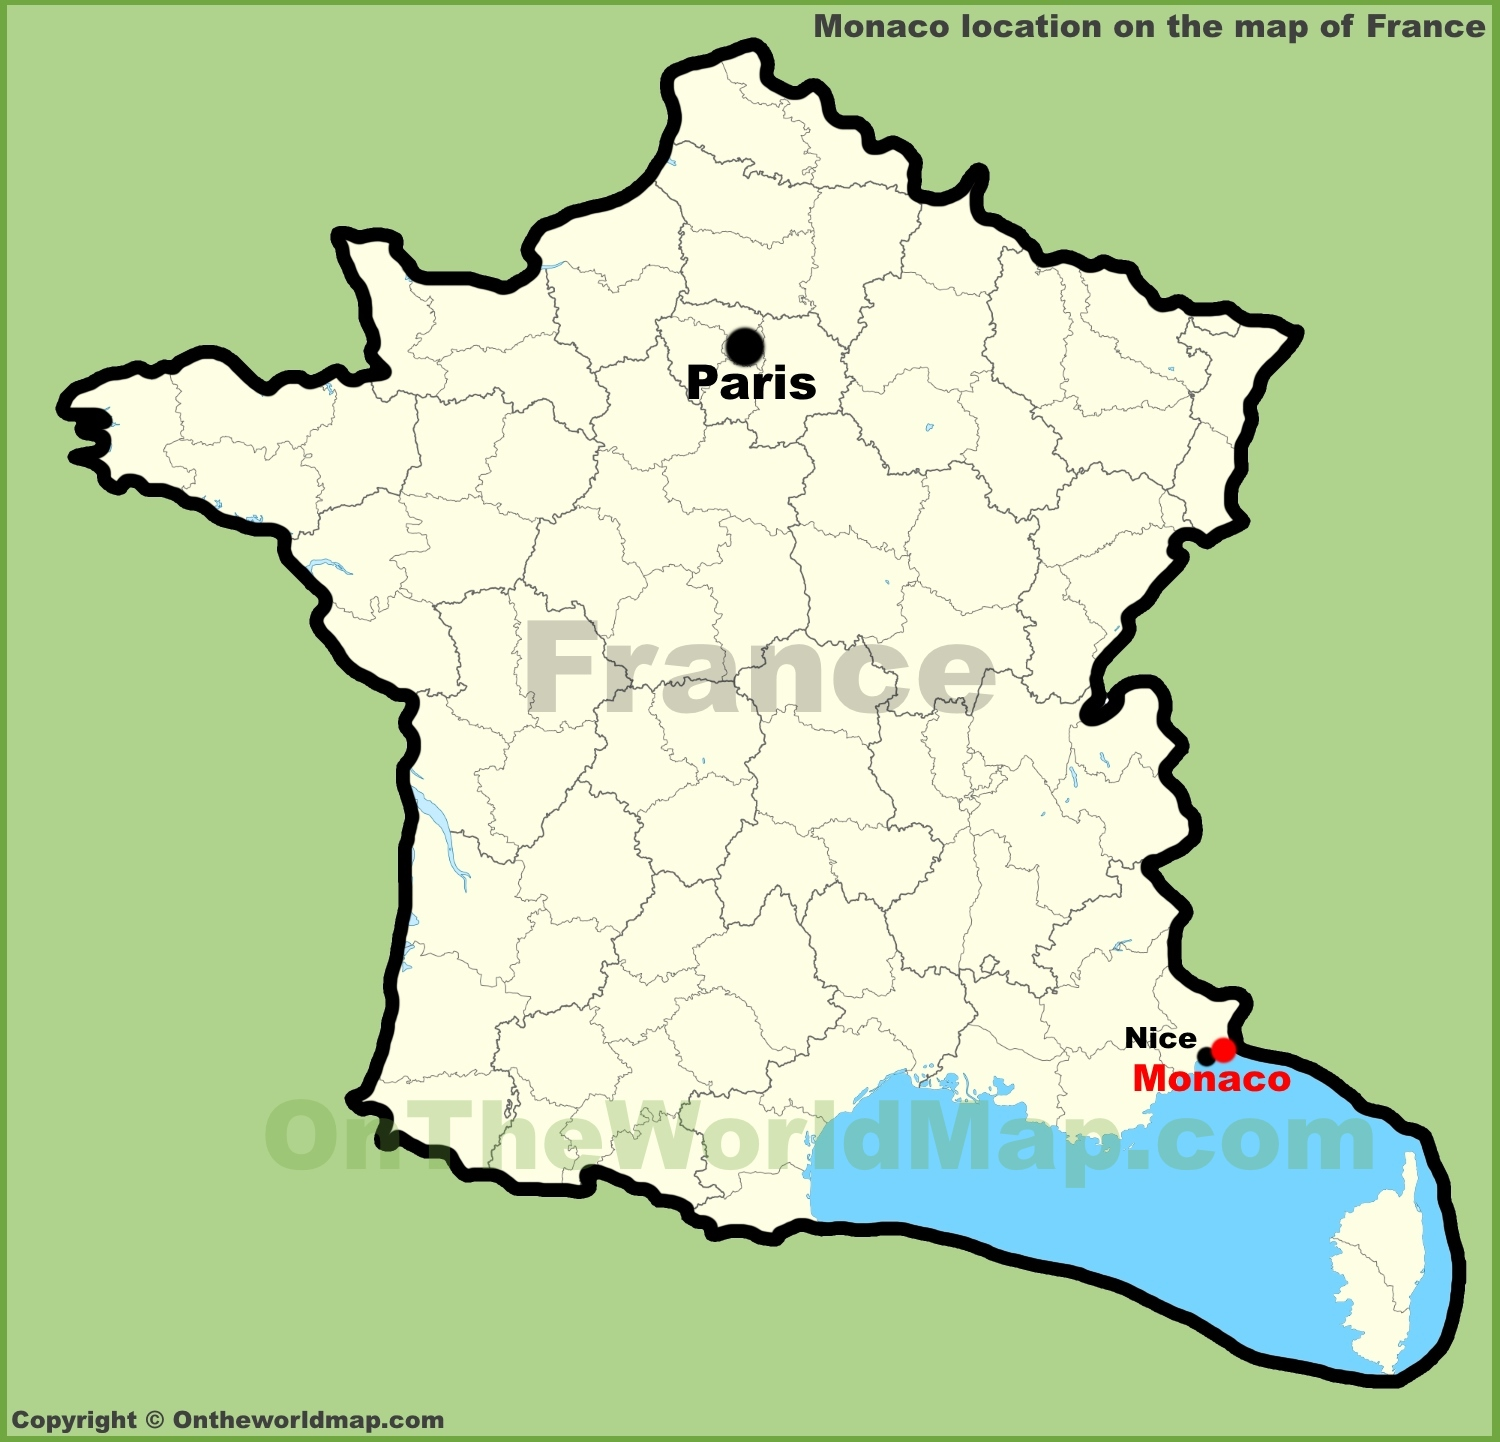 monaco location on the map of france